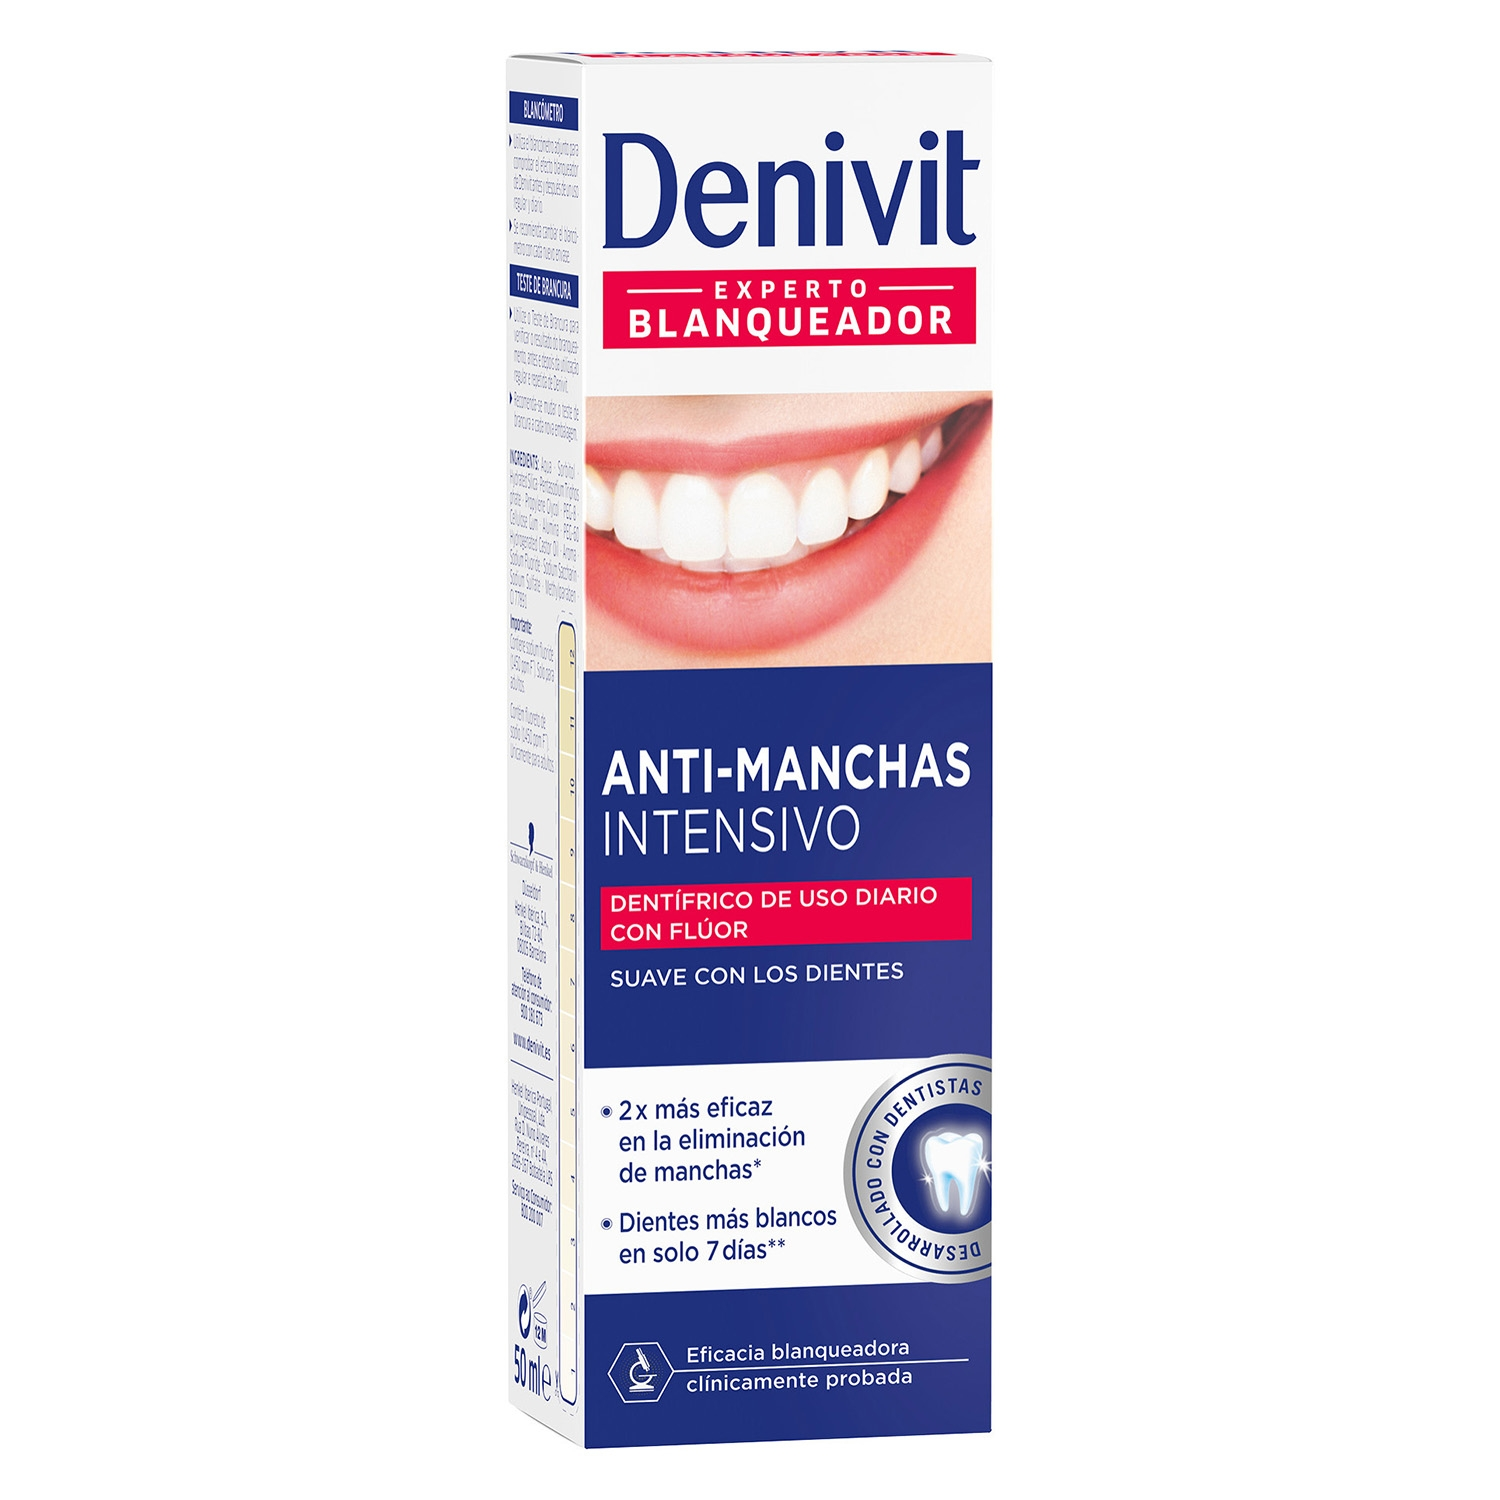 Dentífrico anti-manchas Denivit 50 ml.